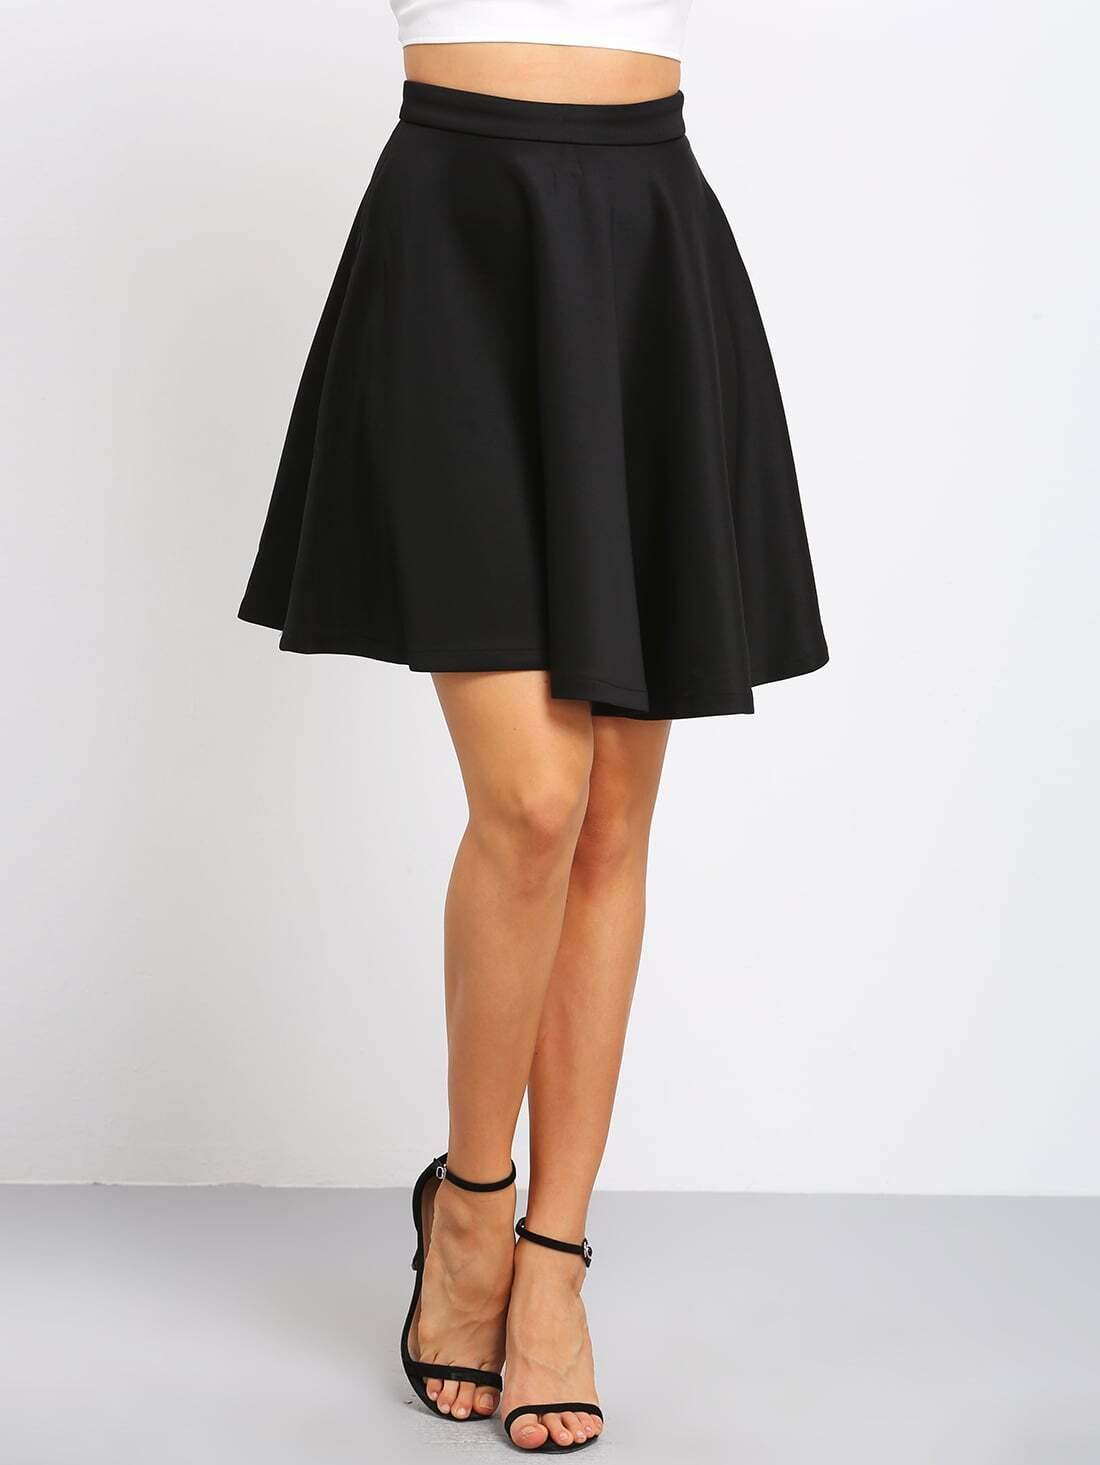 High Waisted Flare Skirt - Sex Movies Pron